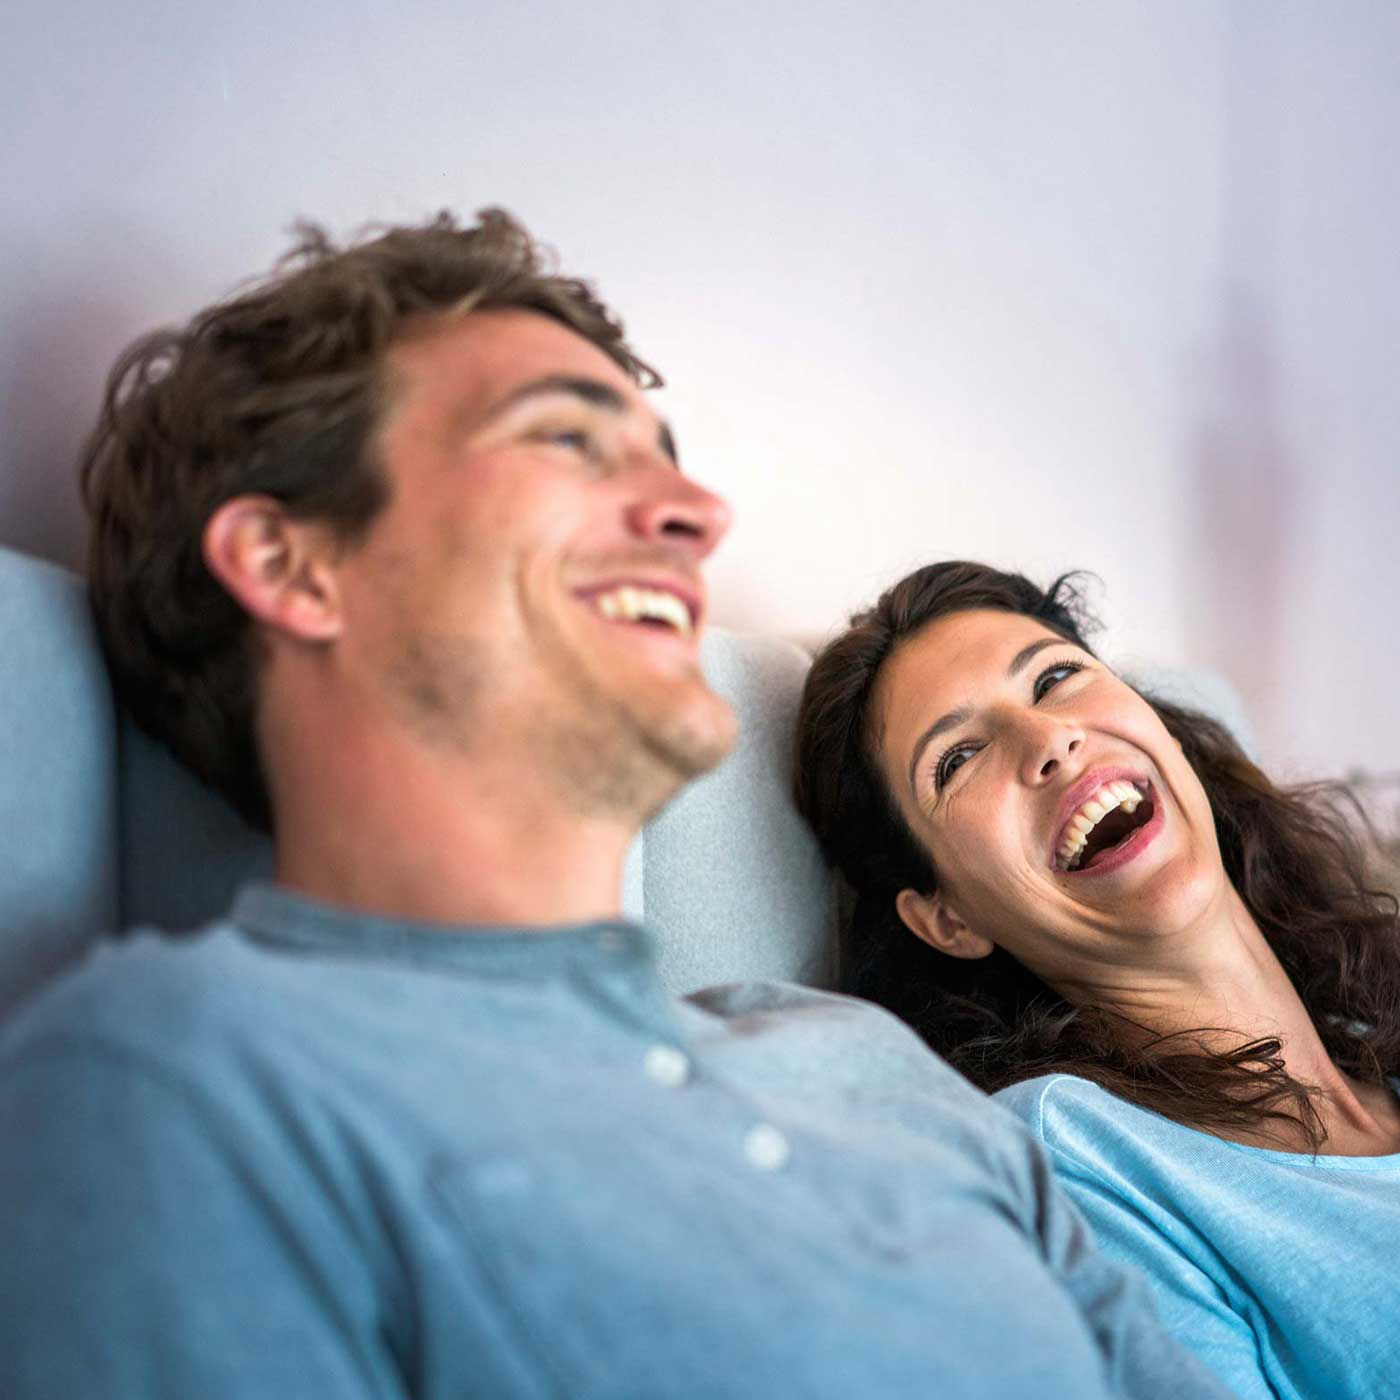 Essential Chiropractic and Healthcare Clinic - Neuropathy Enhancing General Well-Being and Vitality Happy Couple